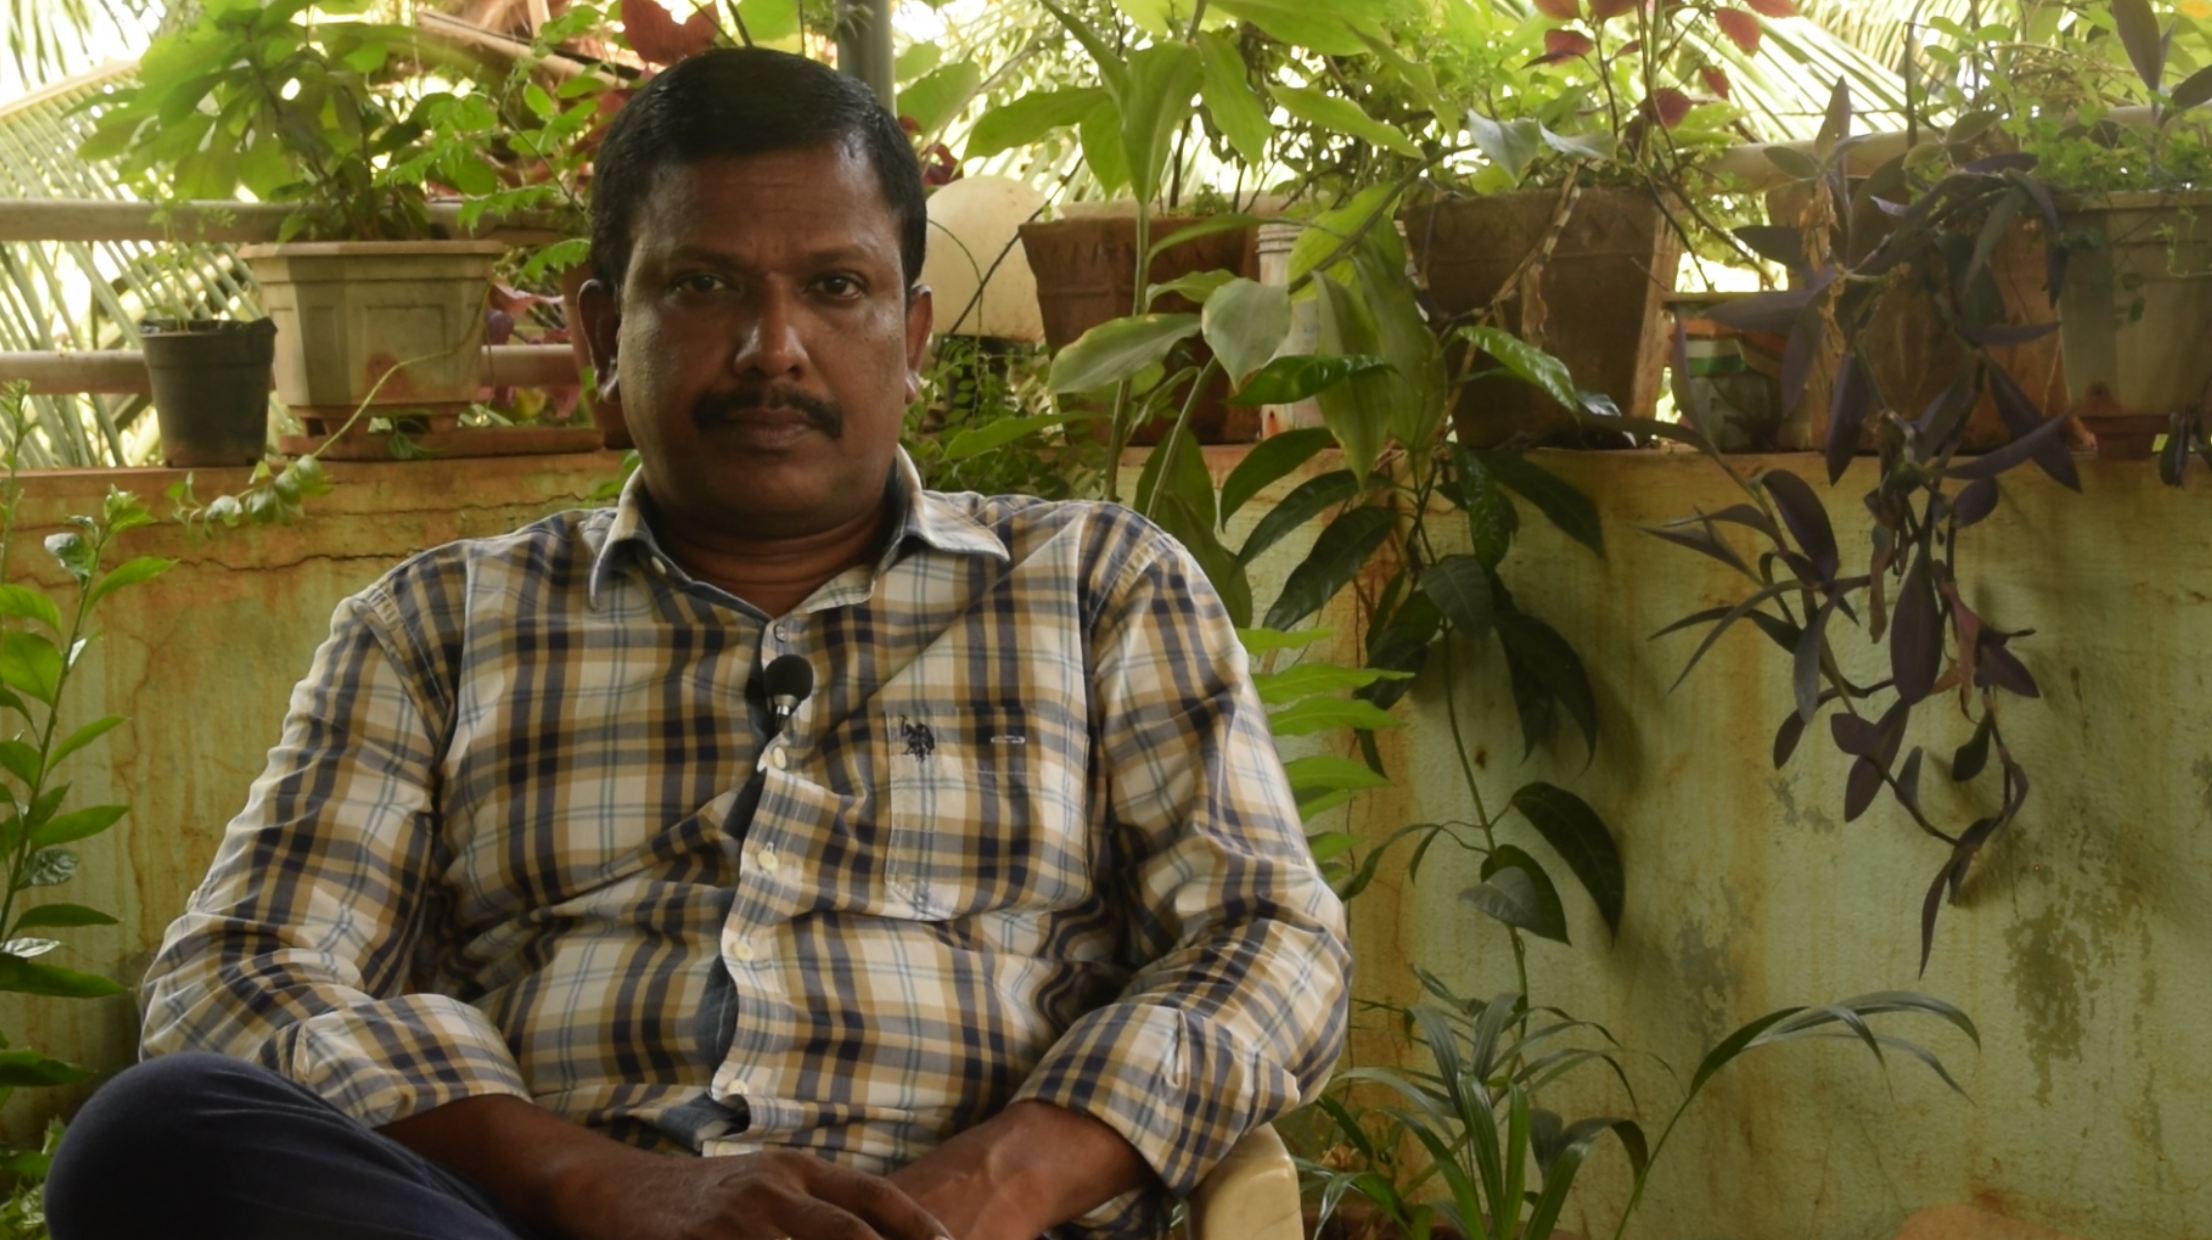 Stalin Dayanand, a defender of ecology and traditional inhabitants in the environs of Mumbai. Photo Shiva Thorat